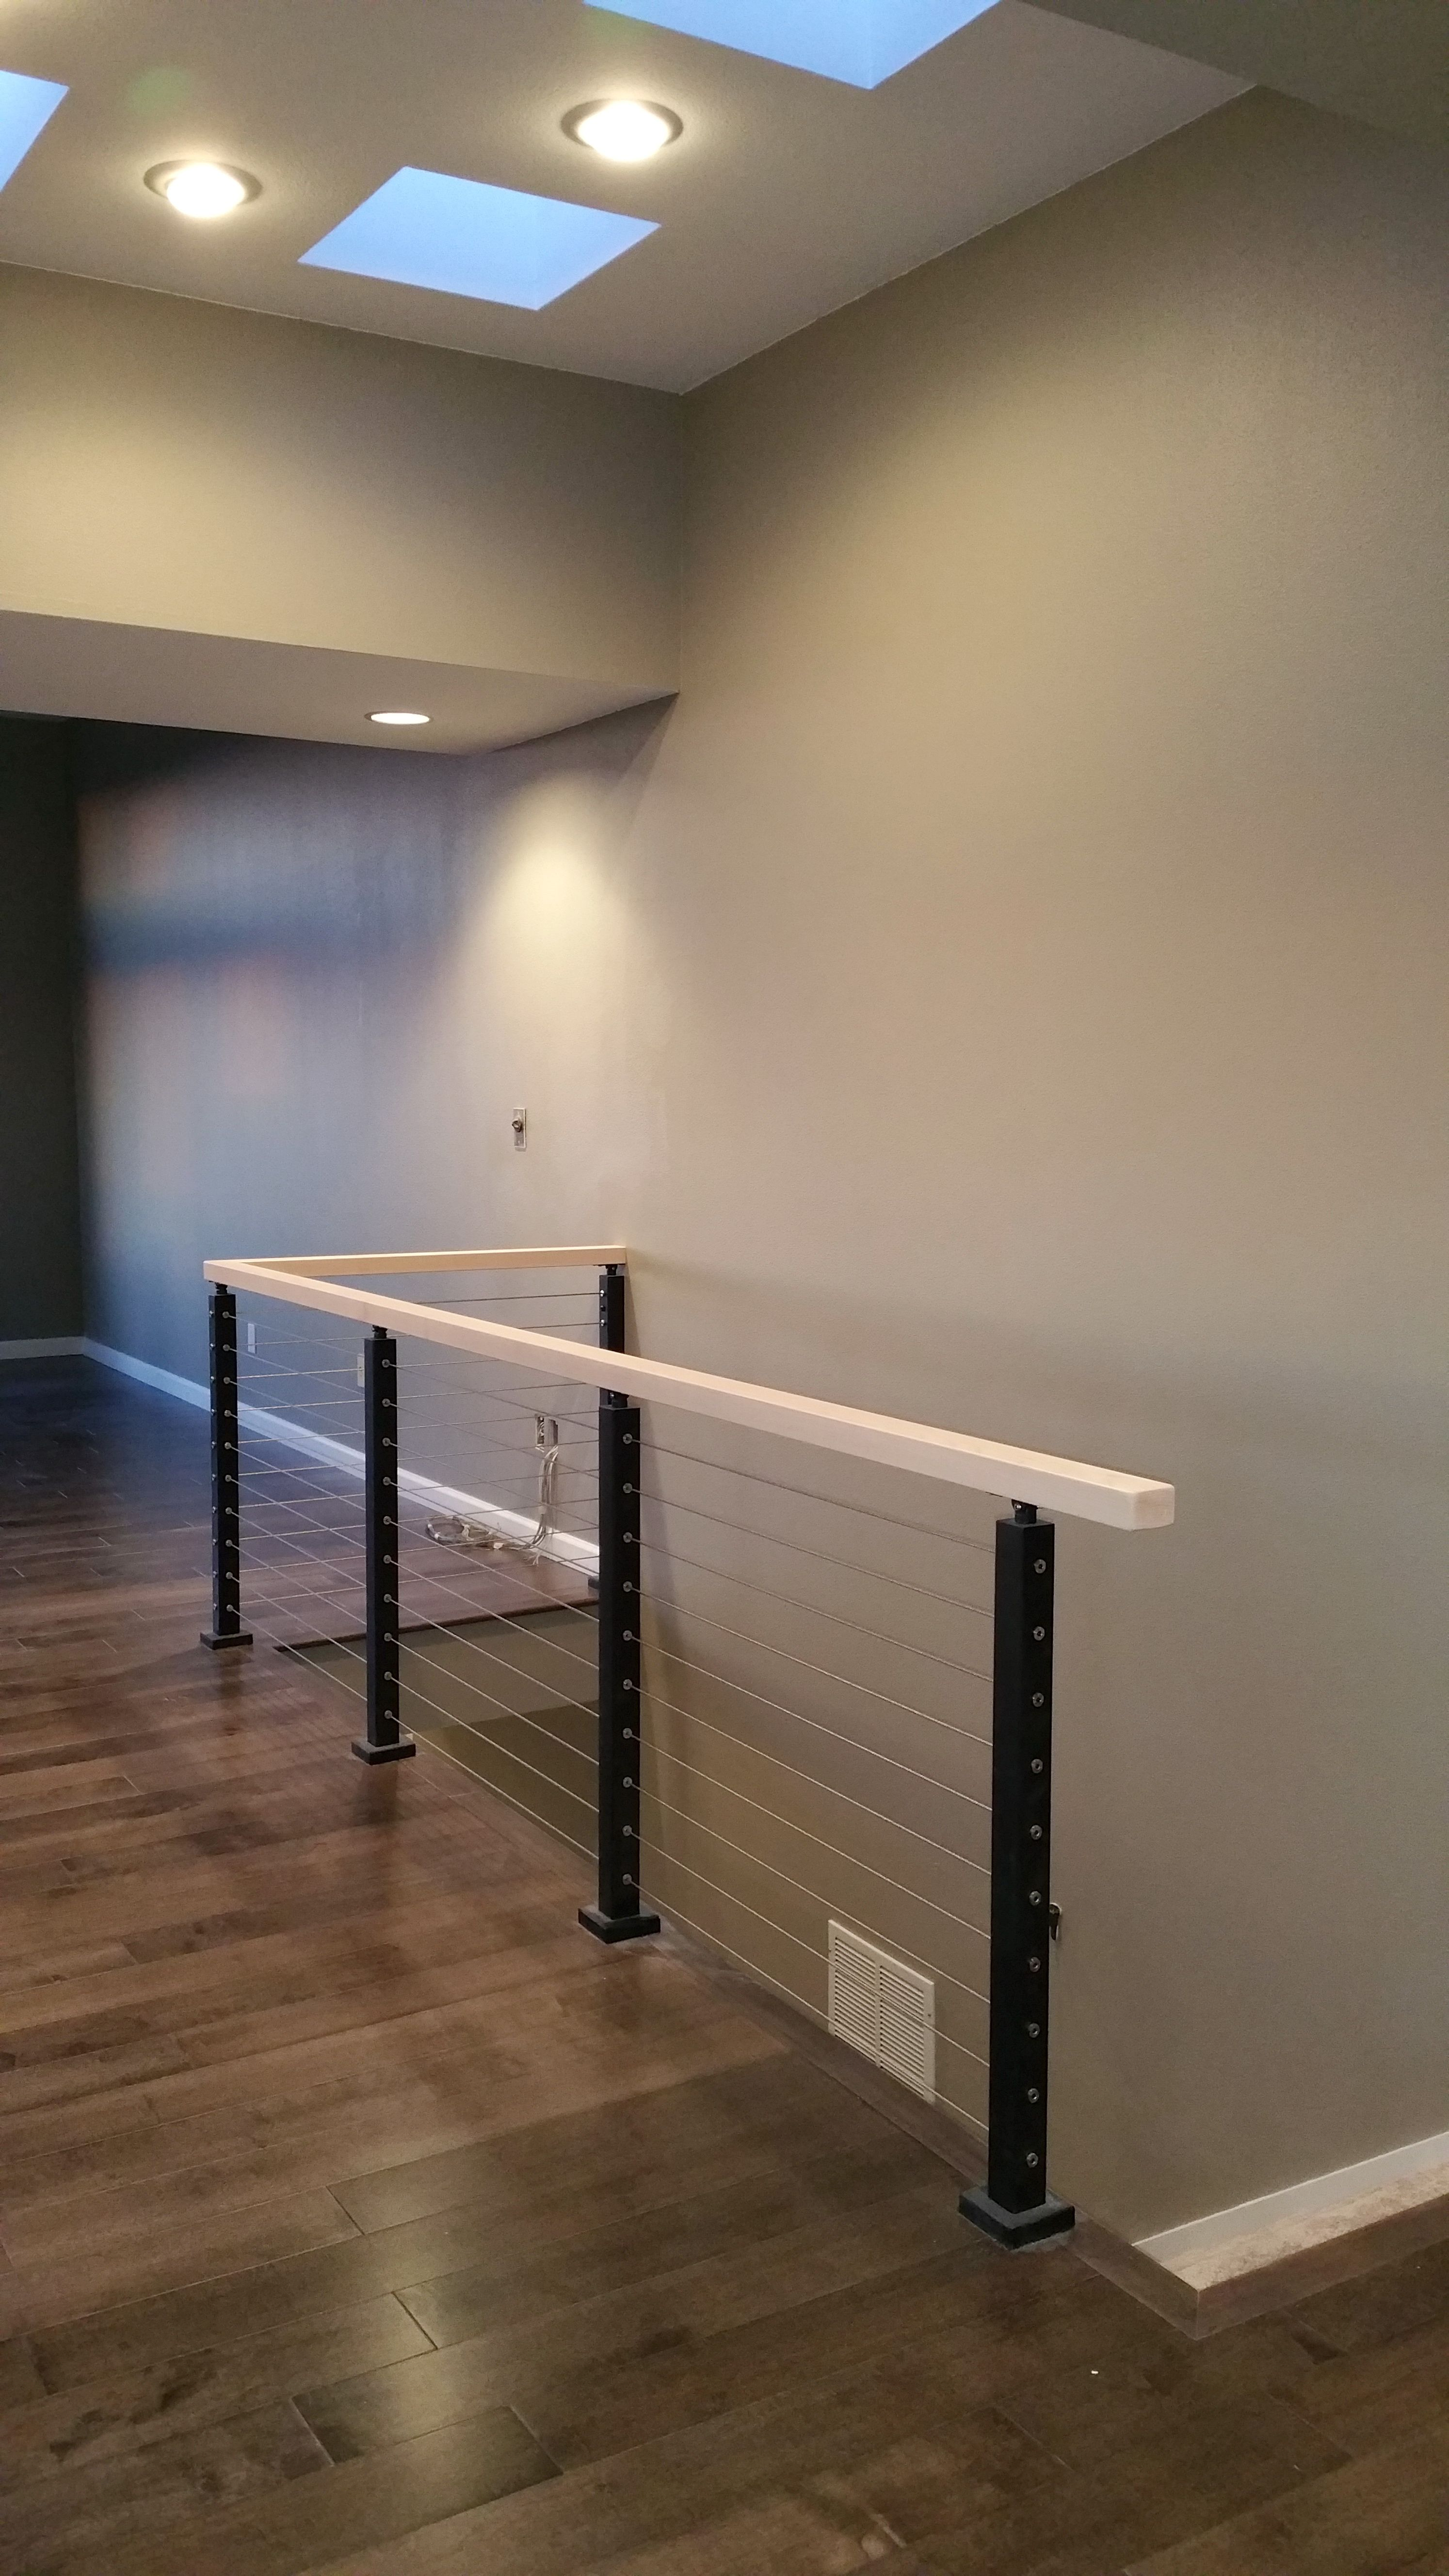 Home interior railings airsuppliesproductcategorycablerailingsystems